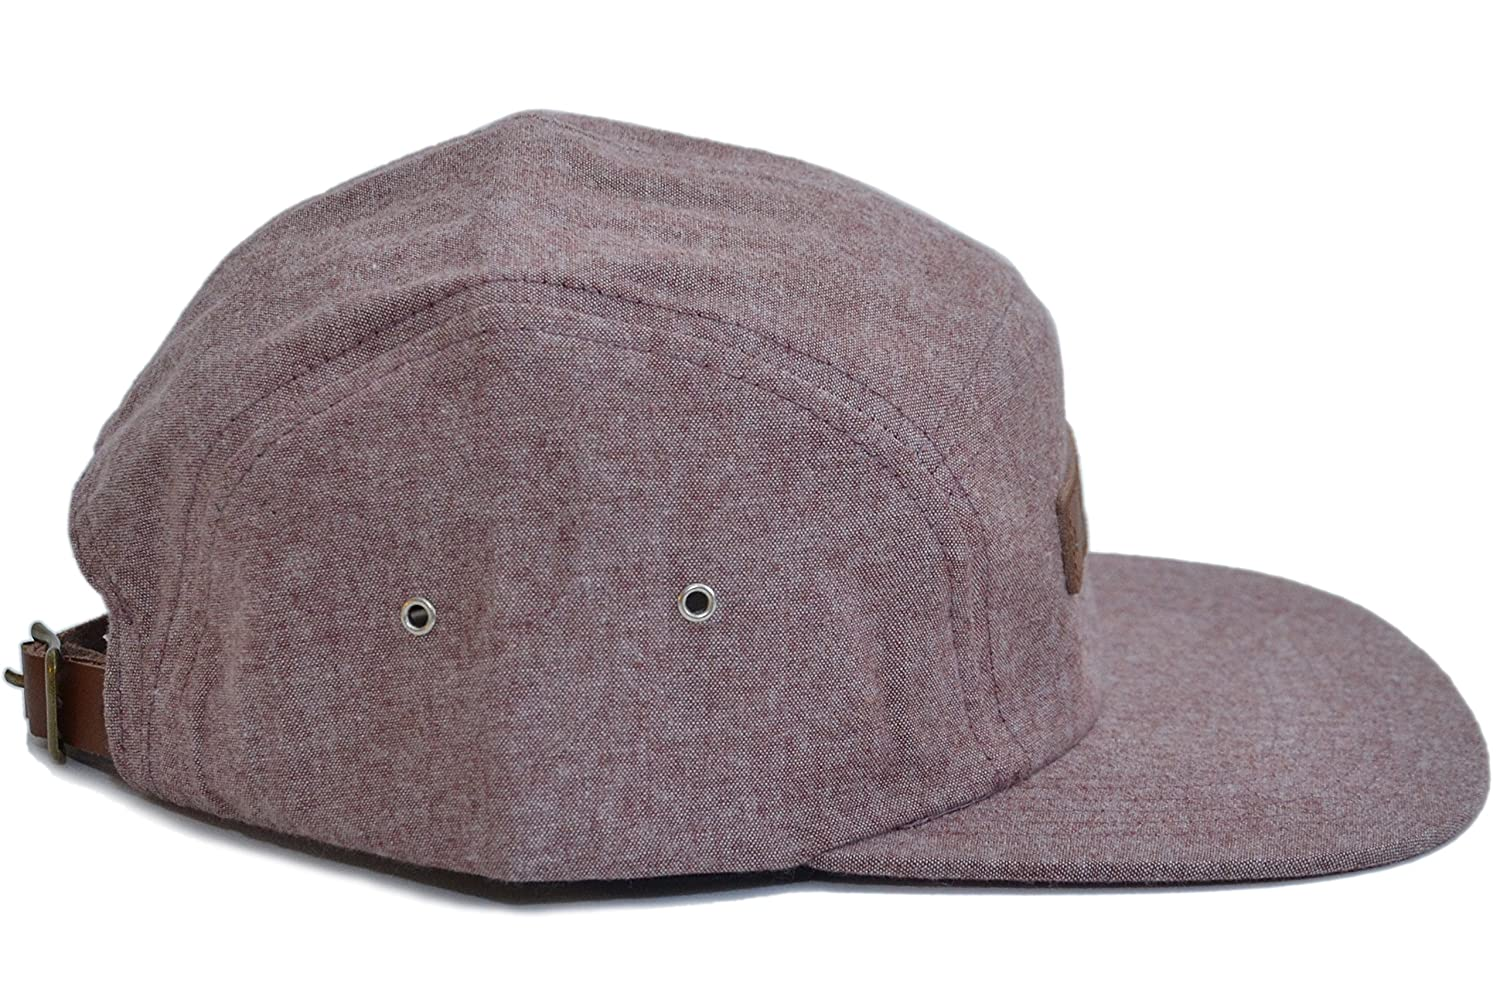 97f11038115bc Skyed Apparel Premium 5 Panel Summit Burgundy Camper Hat with Genuine  Leather Strap at Amazon Men s Clothing store